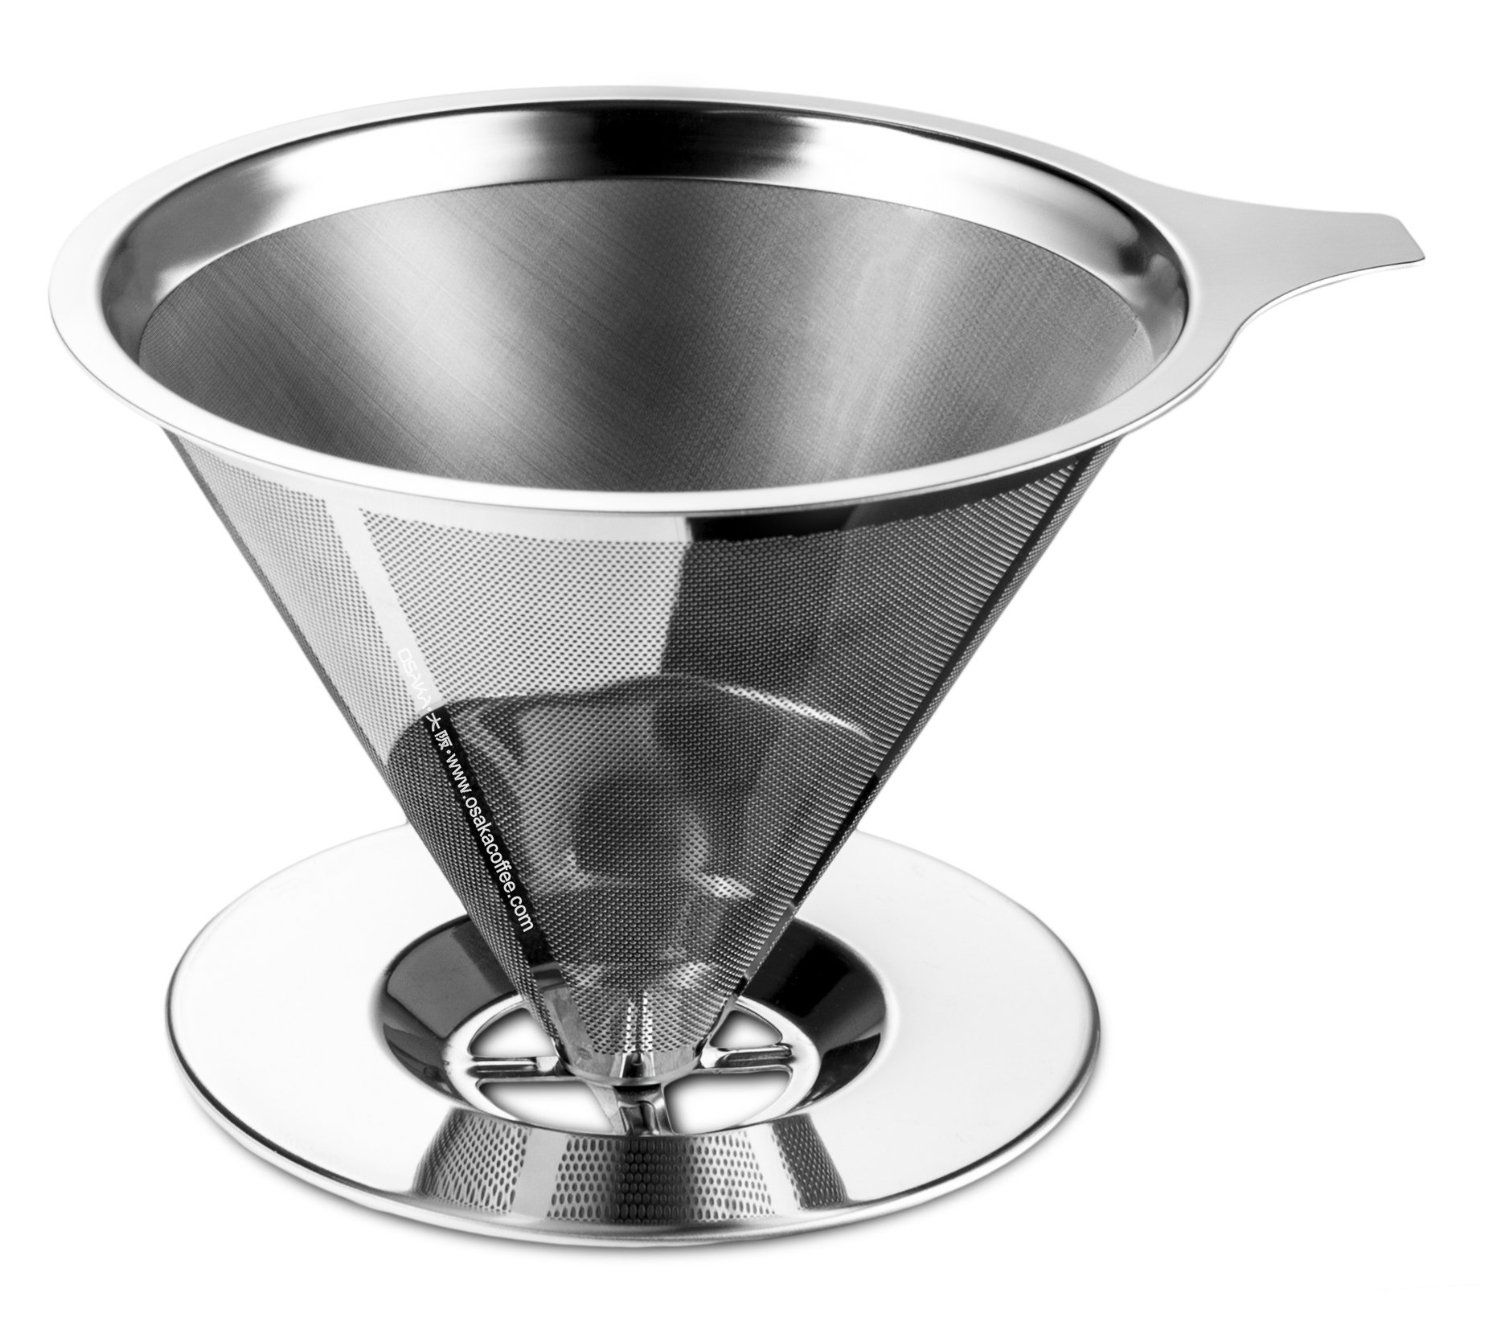 Osaka Stainless Steel Pour Over Cone Dripper Reusable Coffee Filter